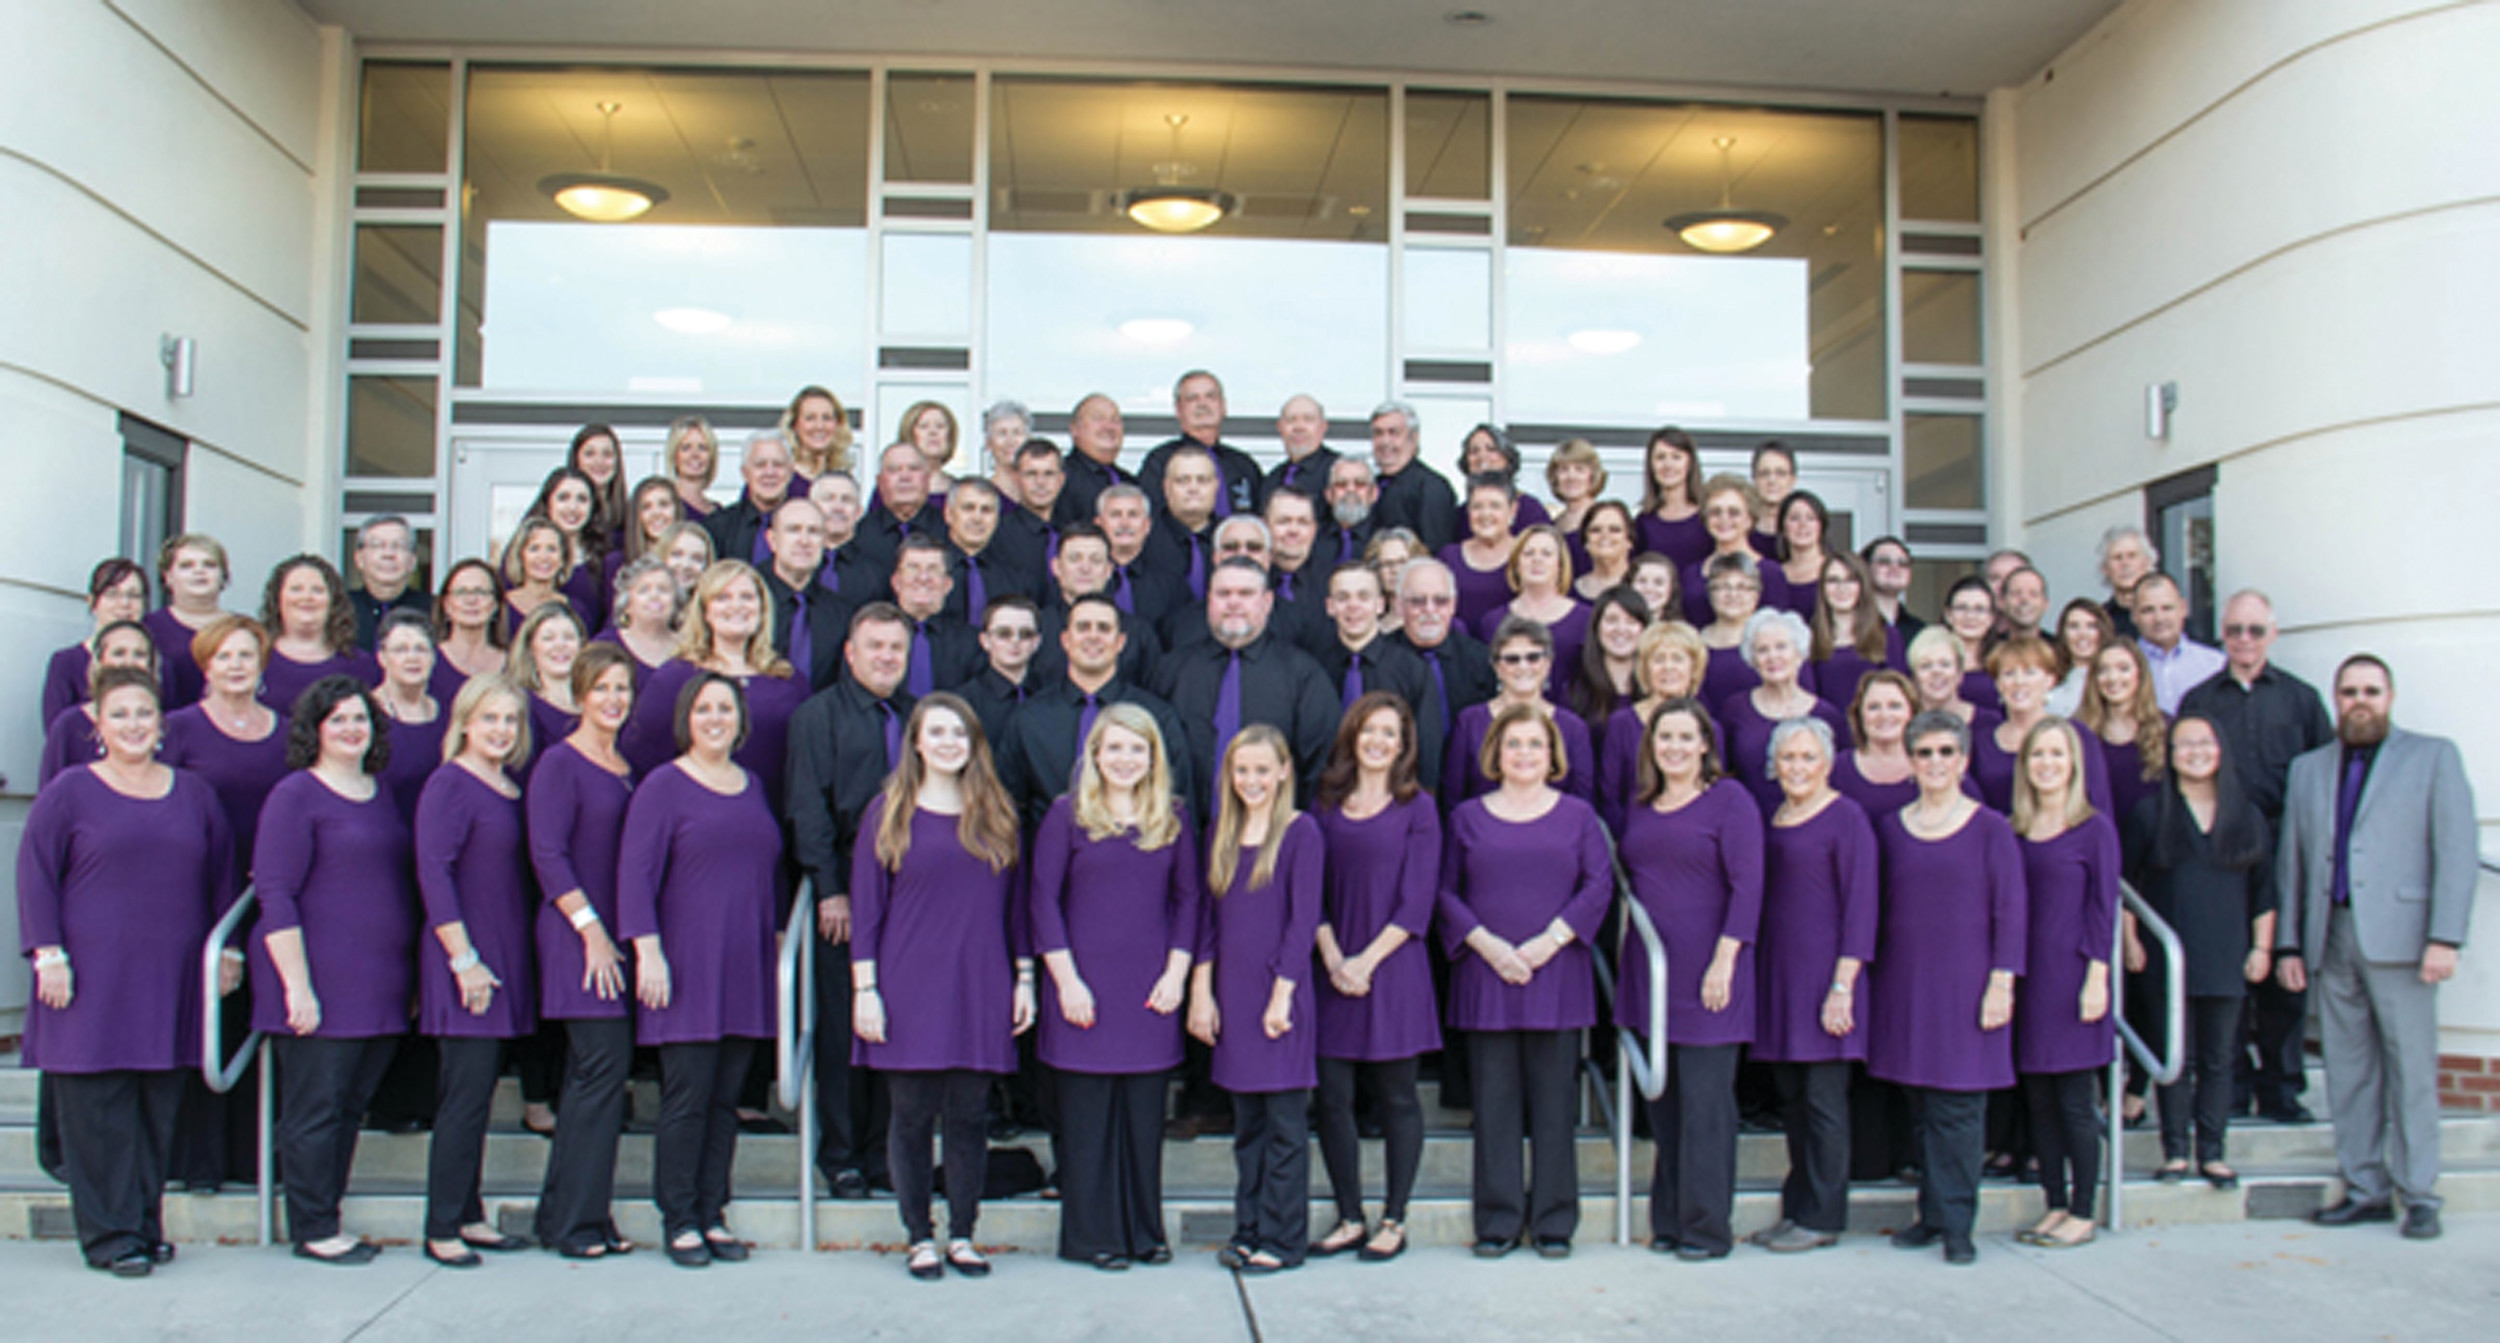 The new East Clarendon Community Choir has 87 members from churches in the Turbeville area.